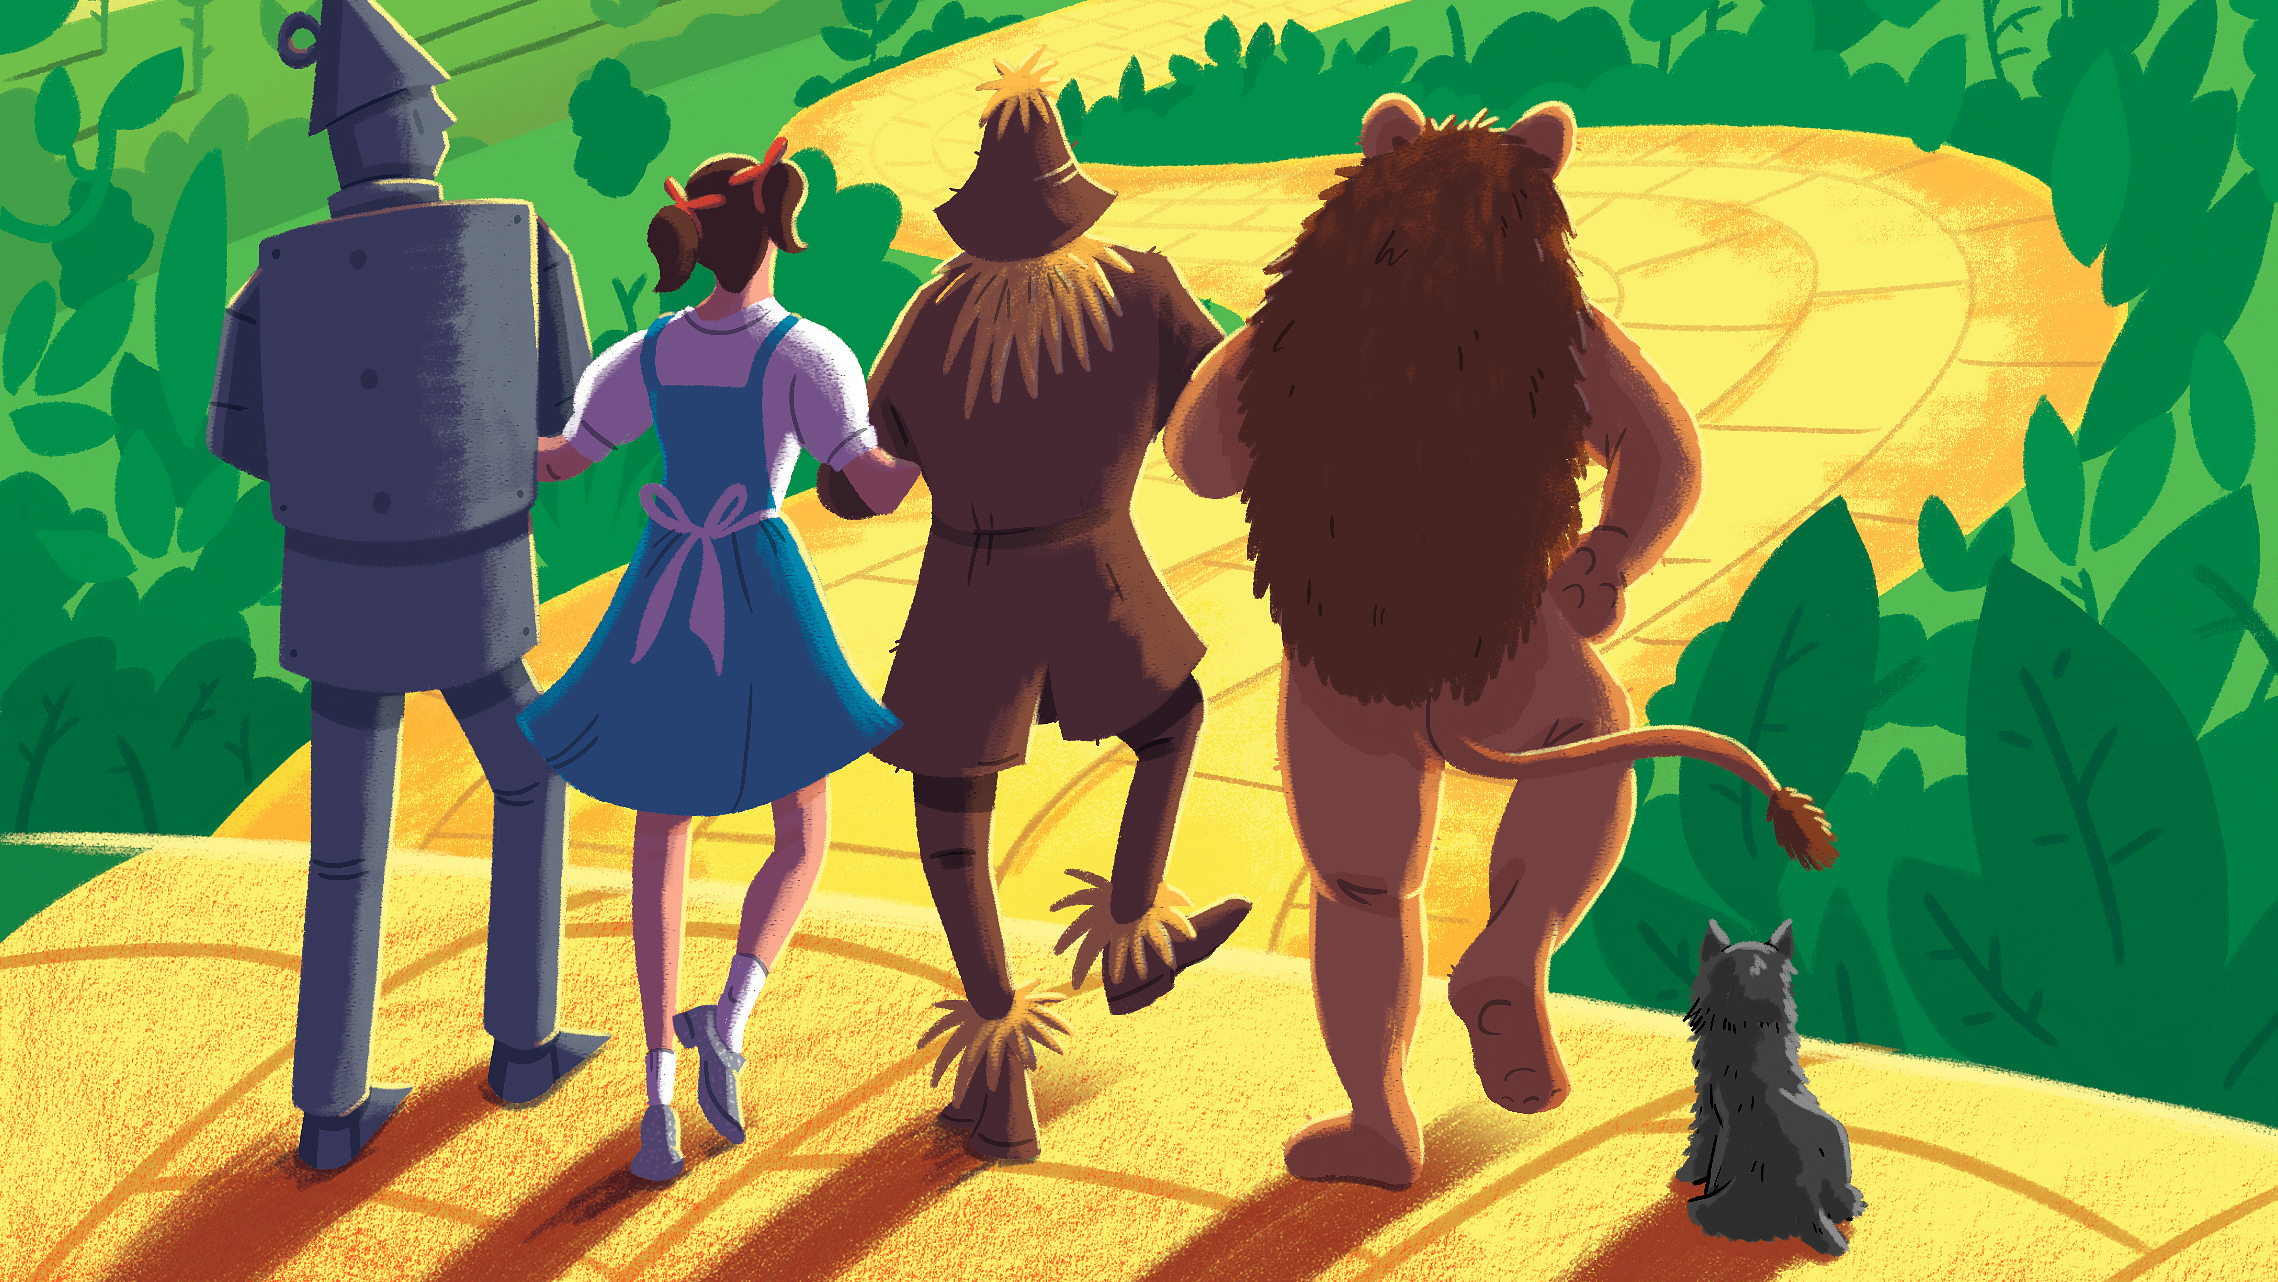 The Wizard Of Oz Illustration Hd Artist 4k Wallpapers Images